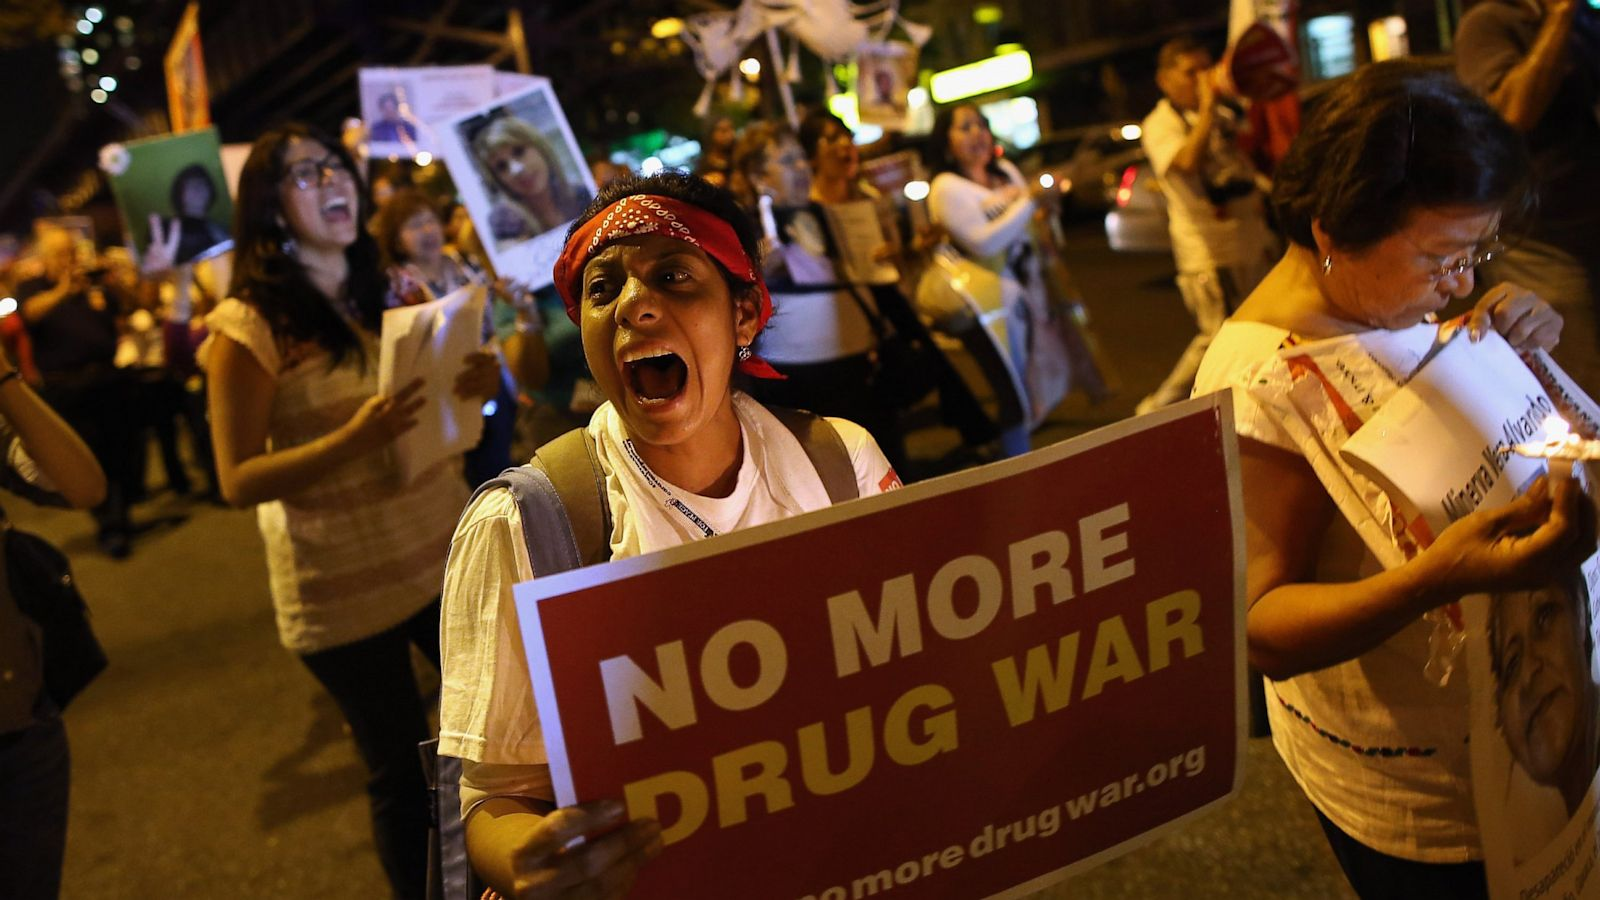 war-drugs-gangs